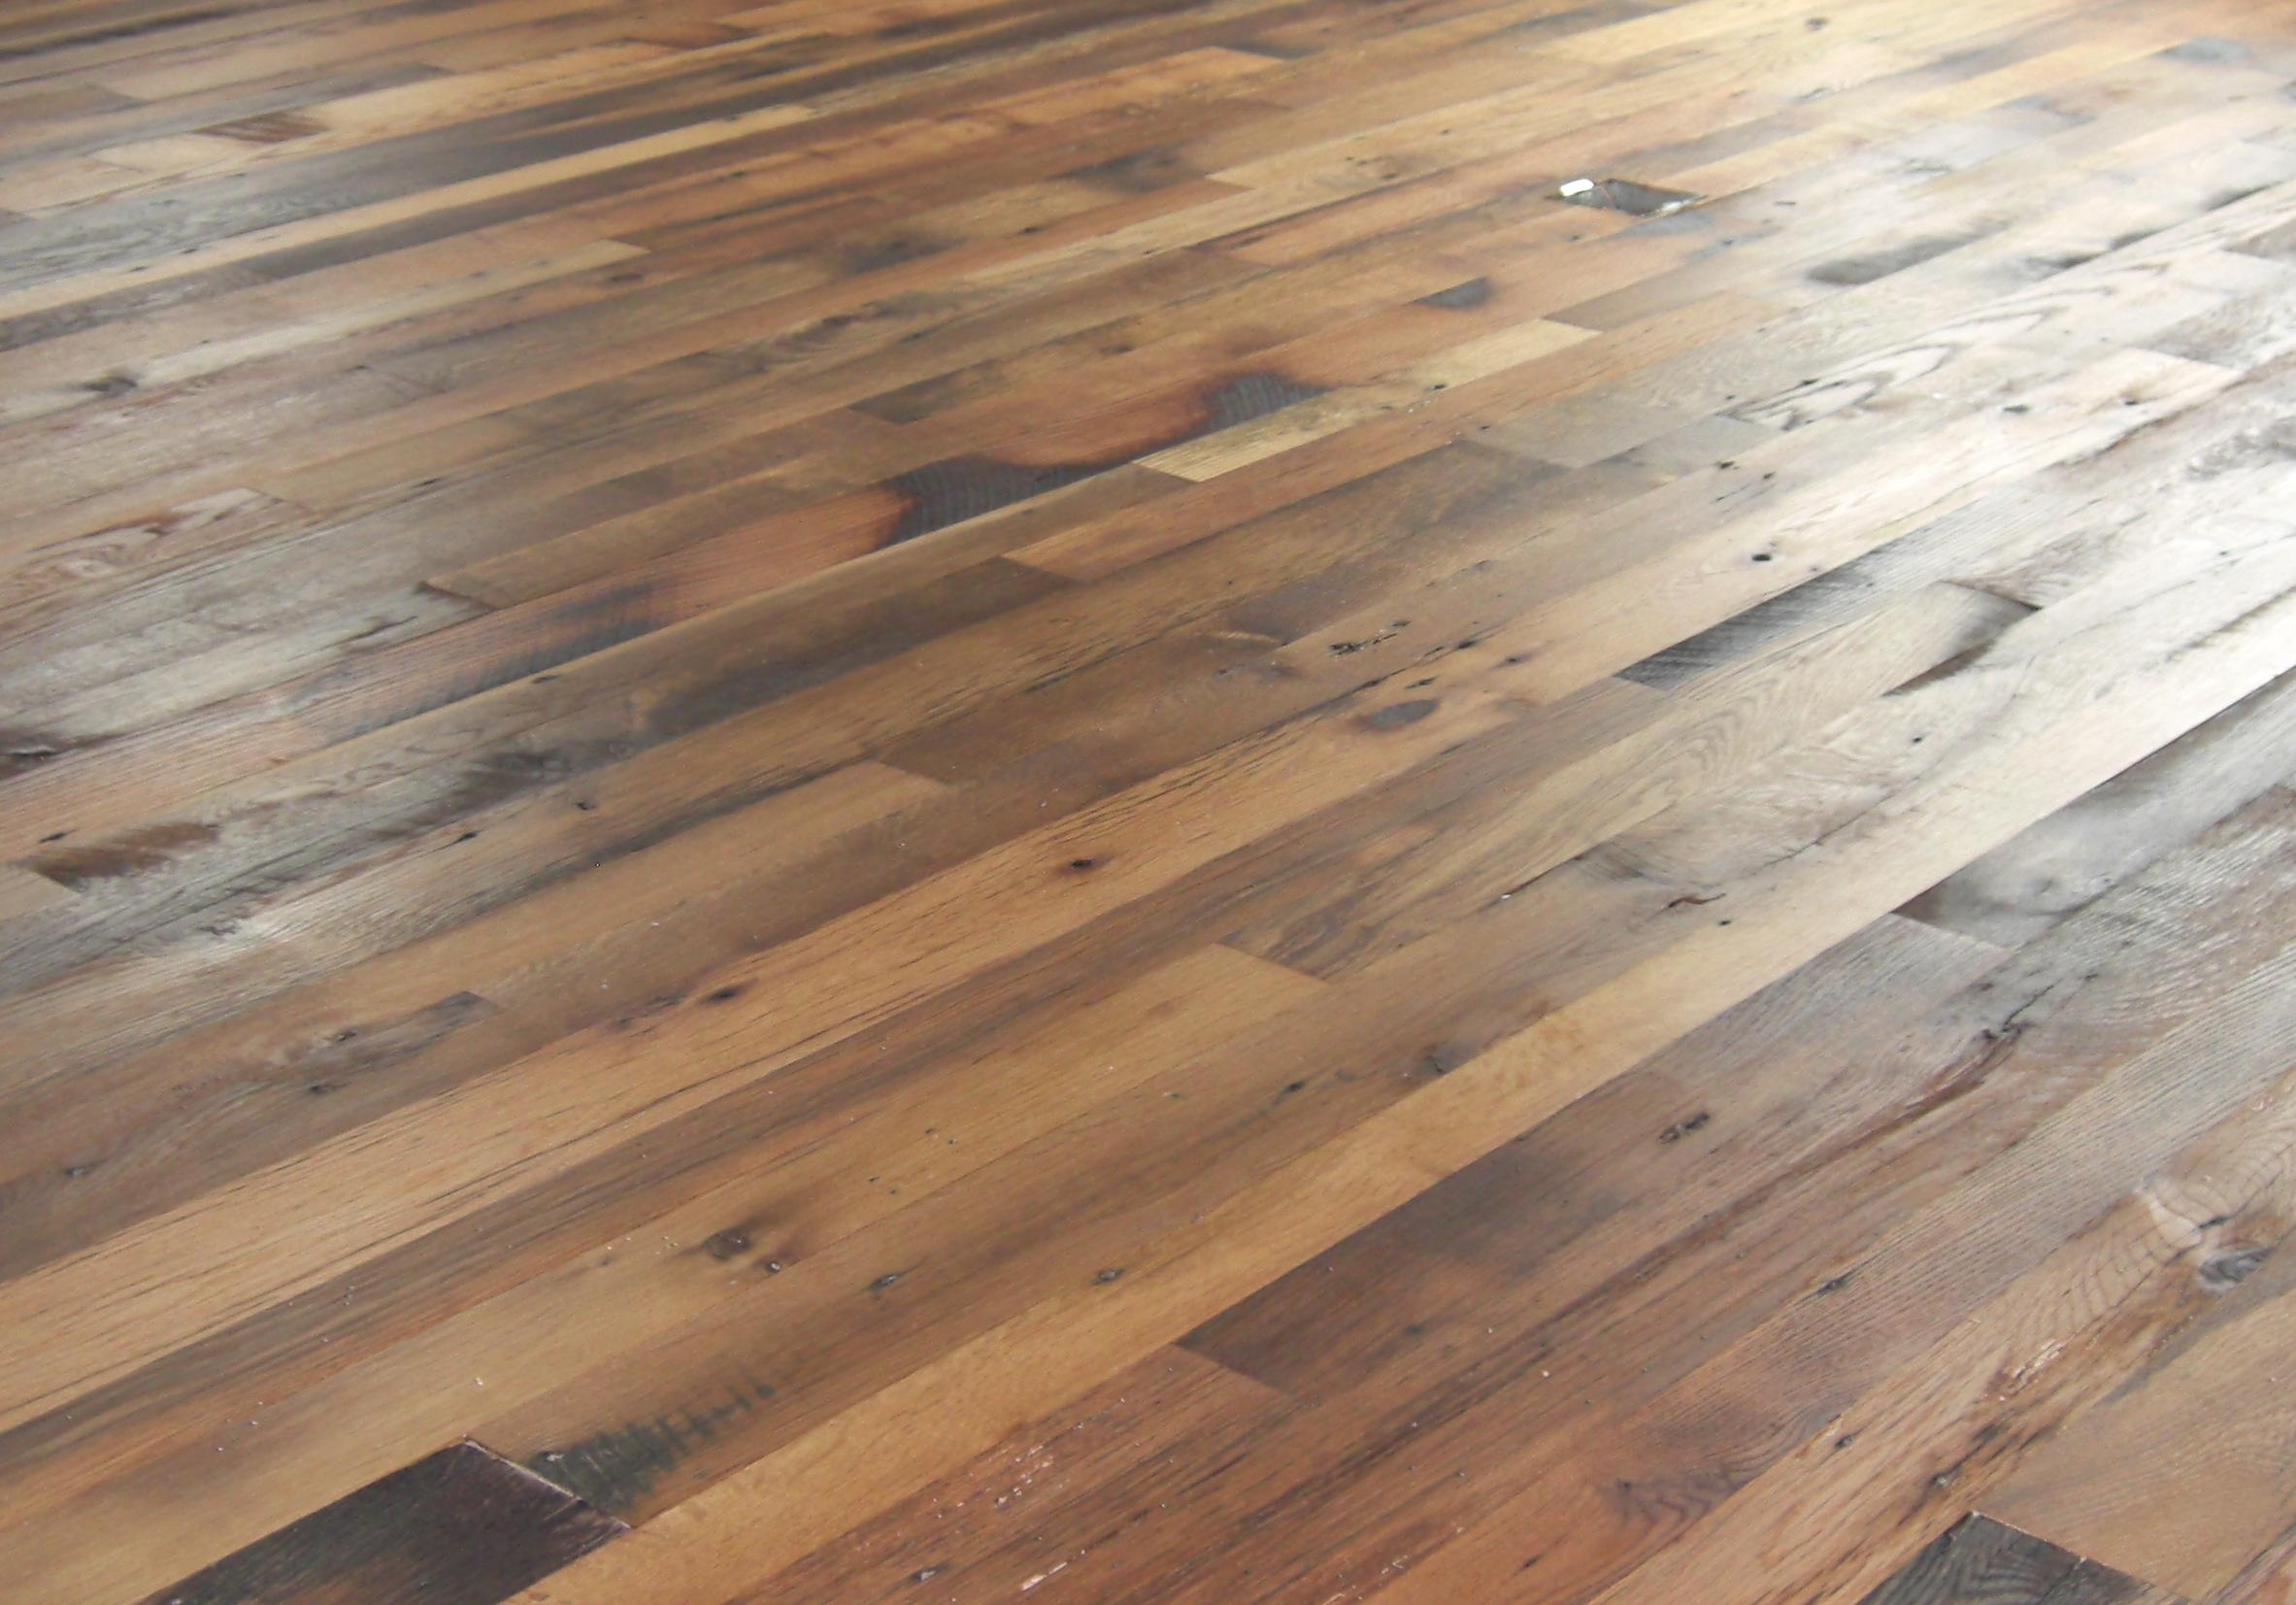 European Wax Oil Finishing Dembowski Hardwood Floors